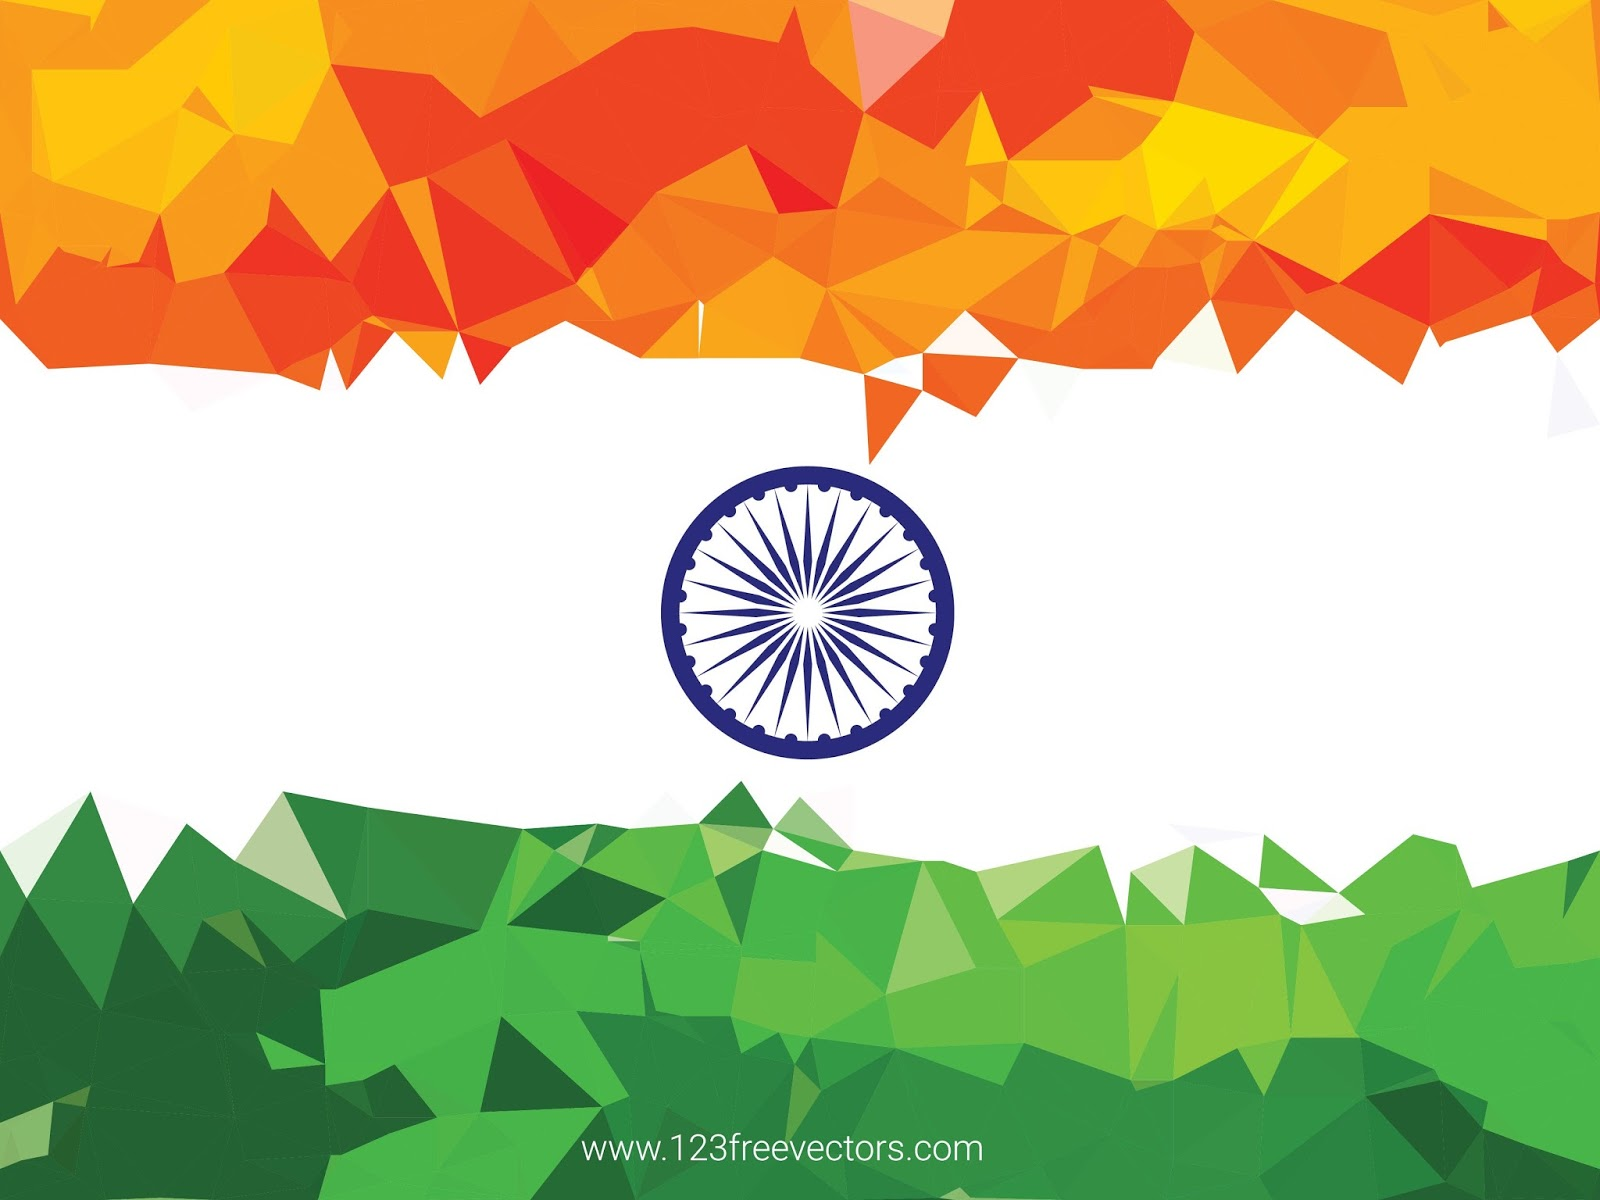 26 January Republic Day Greeting Card Ecards And Cliparts